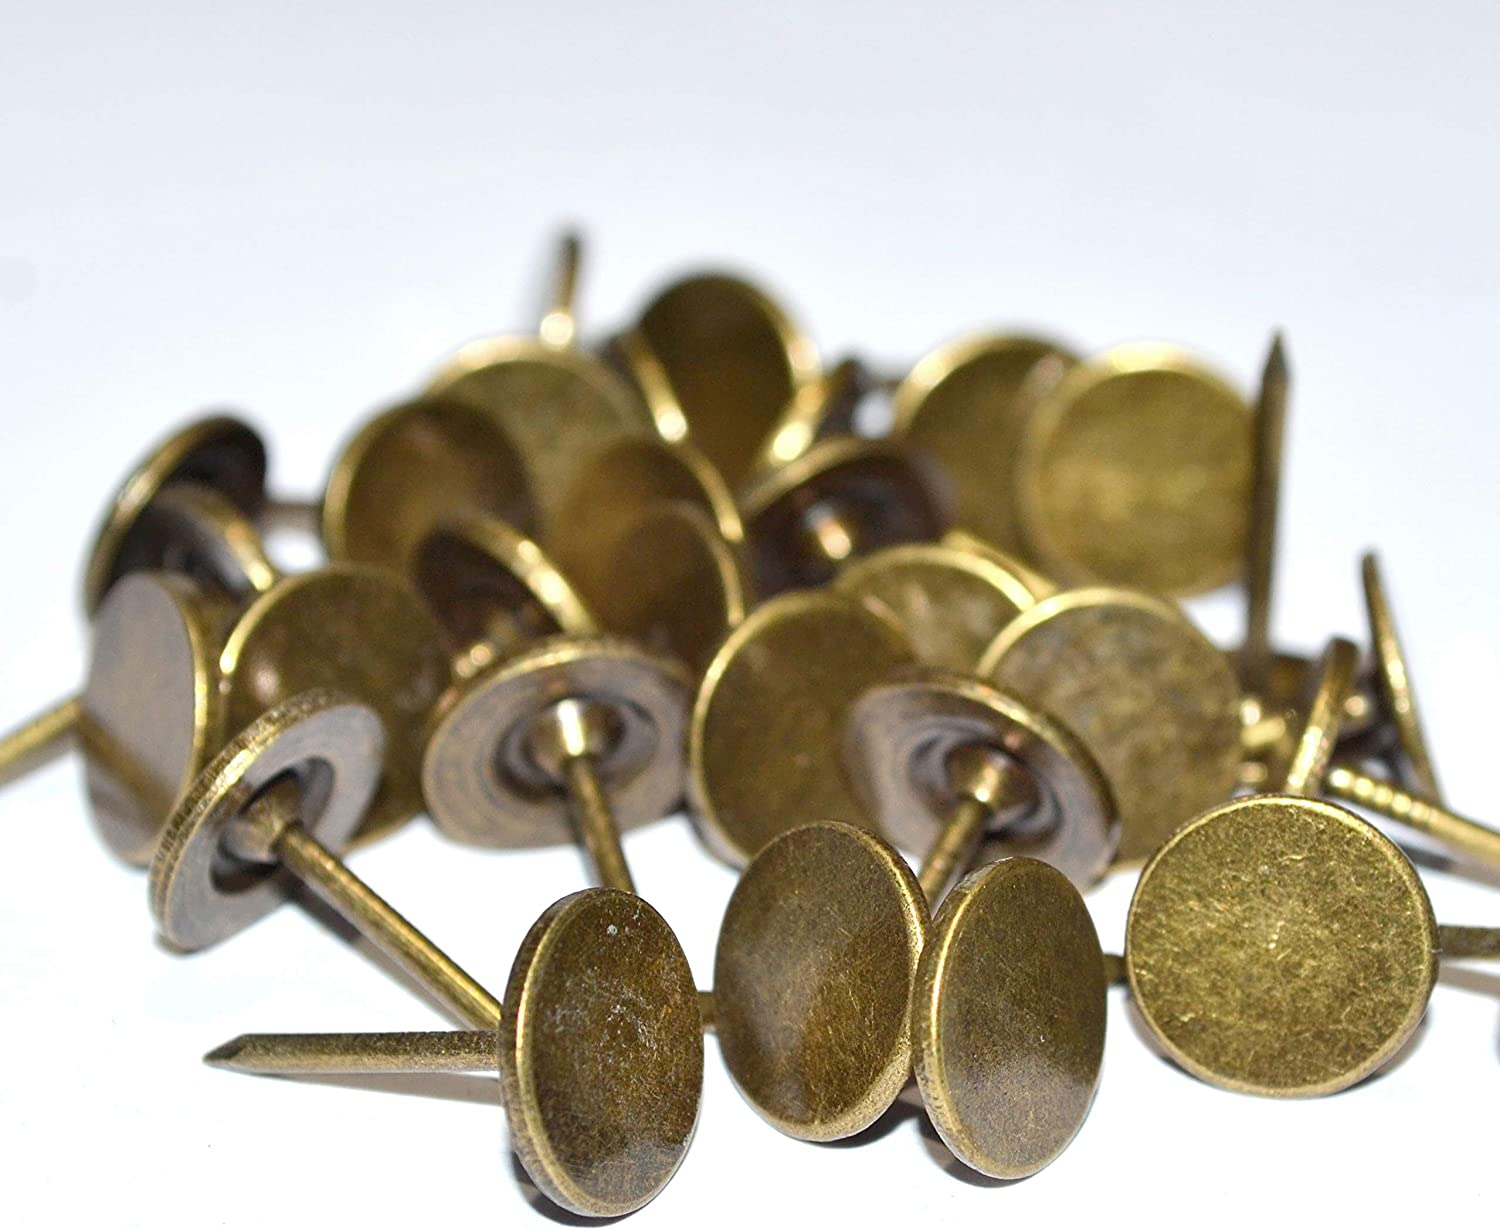 100 Pieces Upholstery Nails Tacks Push Pins Round Flat Head Bronze Vintage Thumb Tack for Furniture Decoration (Head Diameter:7/16